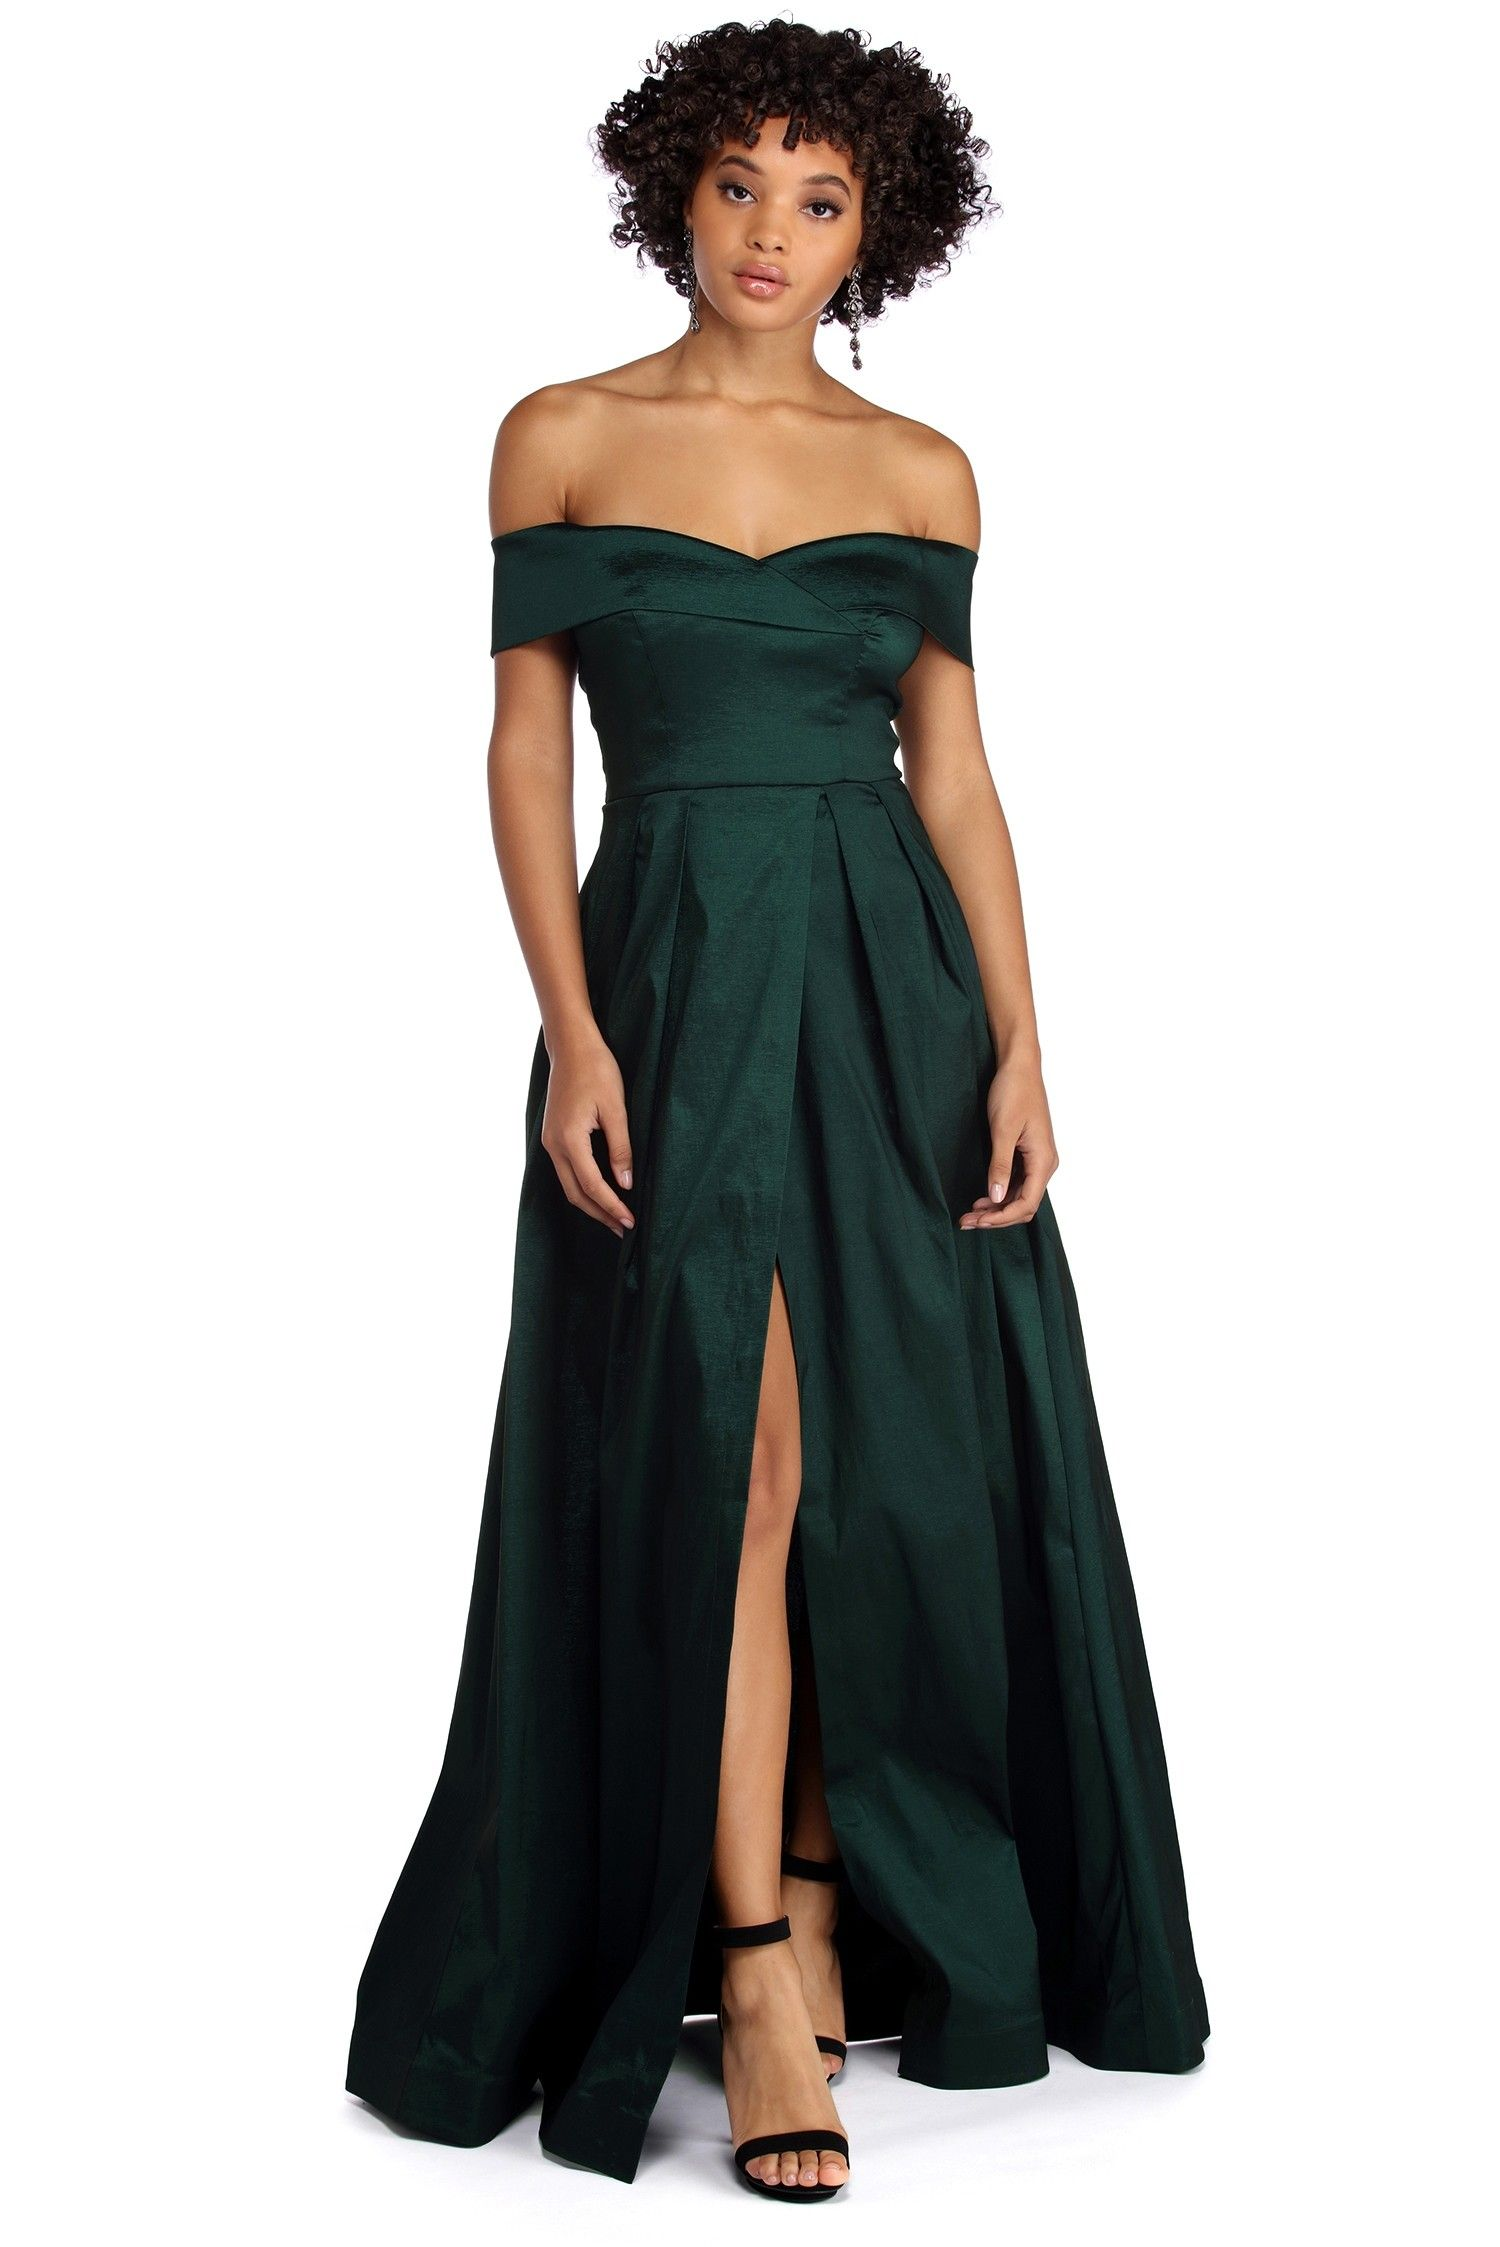 Maci off the shoulder taffeta ball gown s t y l e pinterest